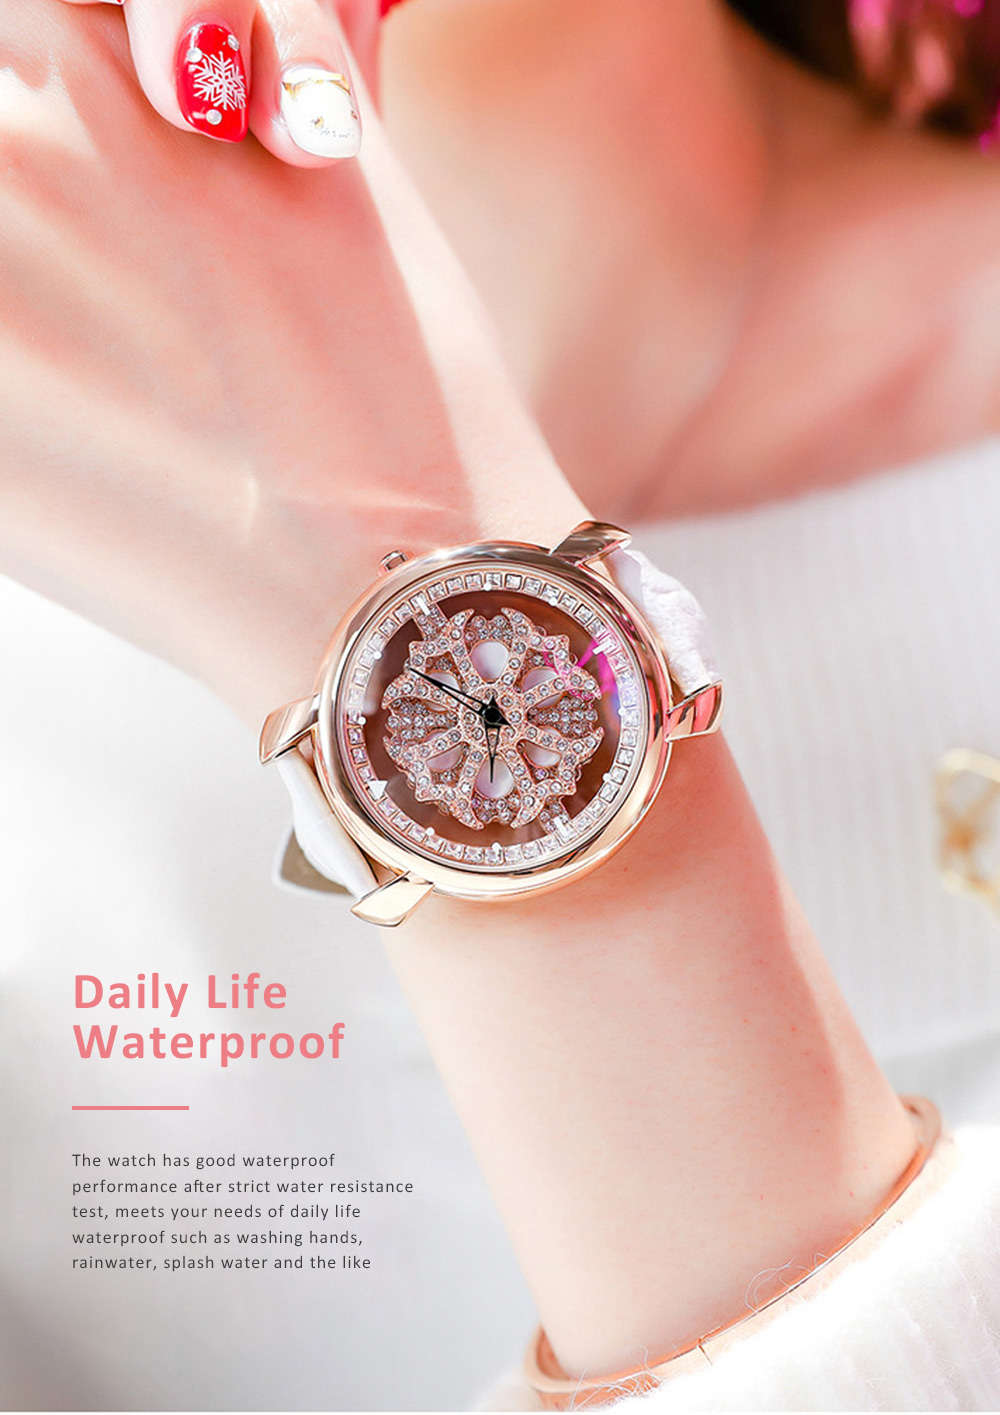 Diamond-encrusted Hollow-out Rotation Watch for Ladies Waterproof Japanese Quartz Movement Wrist Watch 2